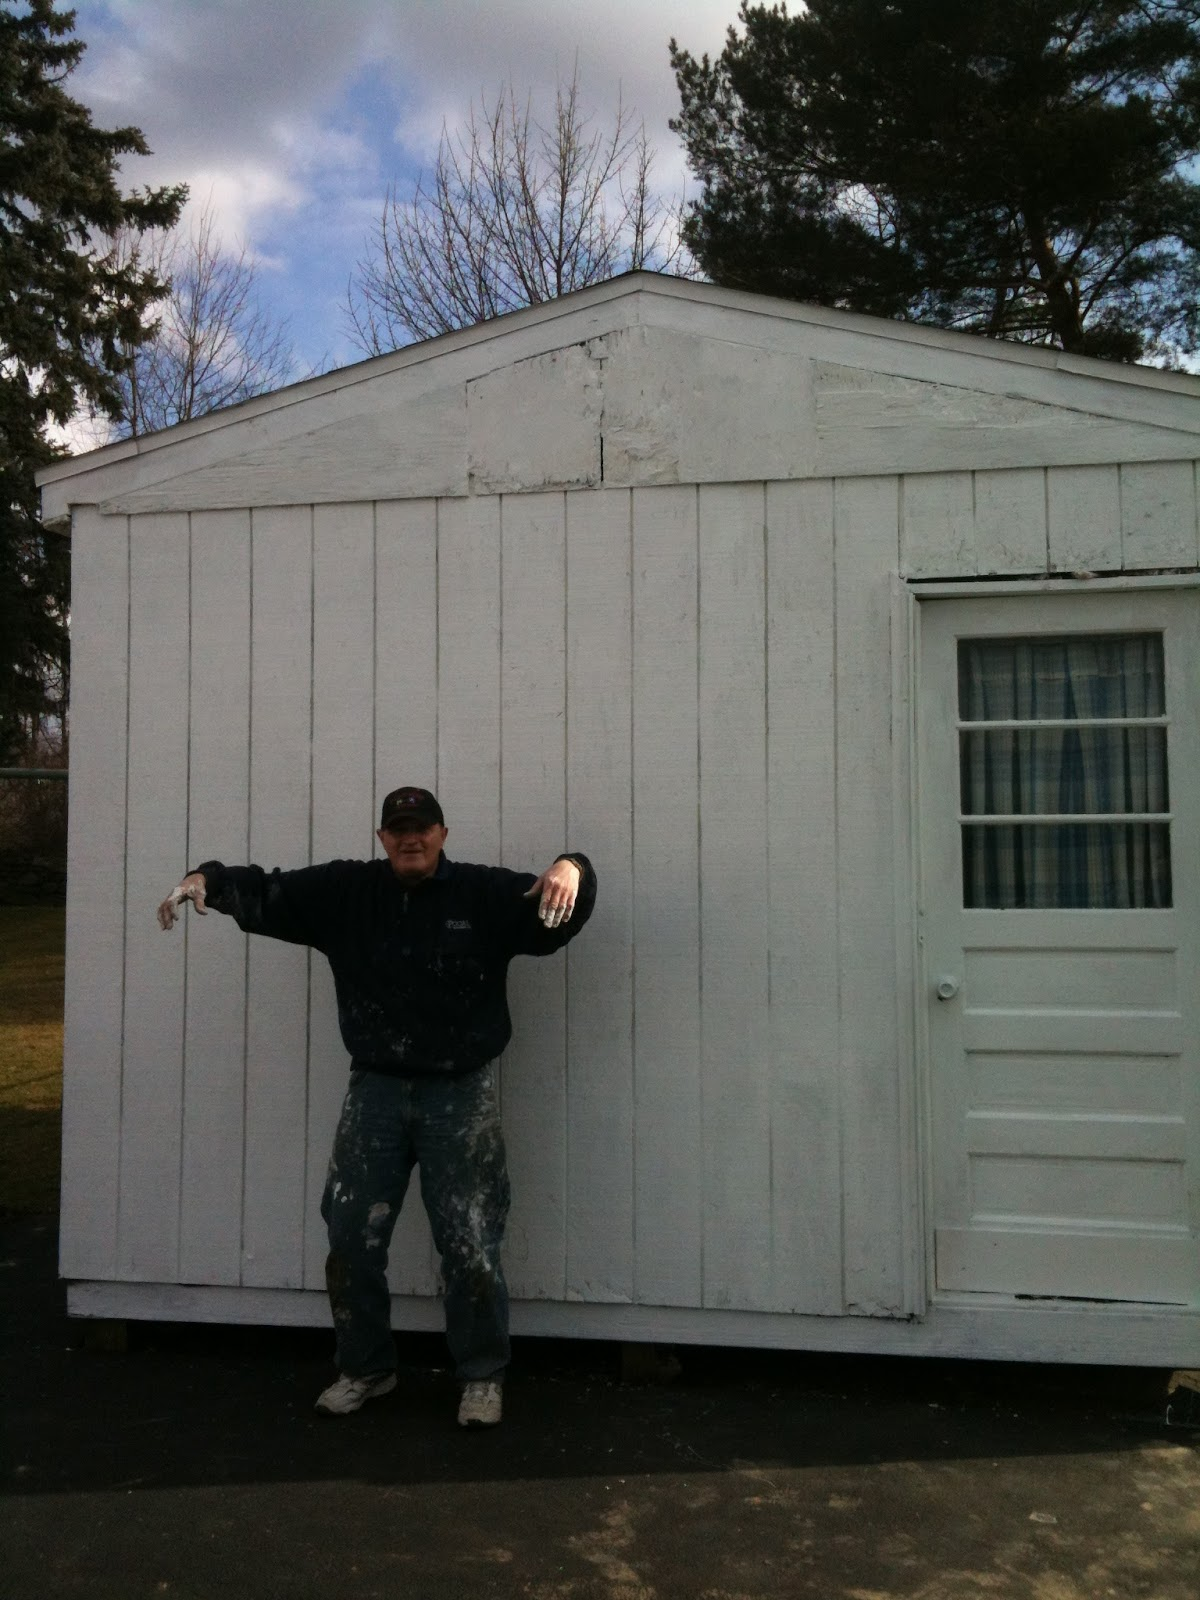 """My dad and I called this """"the day the eagle died"""" -- we tried to save that crazy eagle but sadly it plummeted to its death. The shed is looking much better now."""